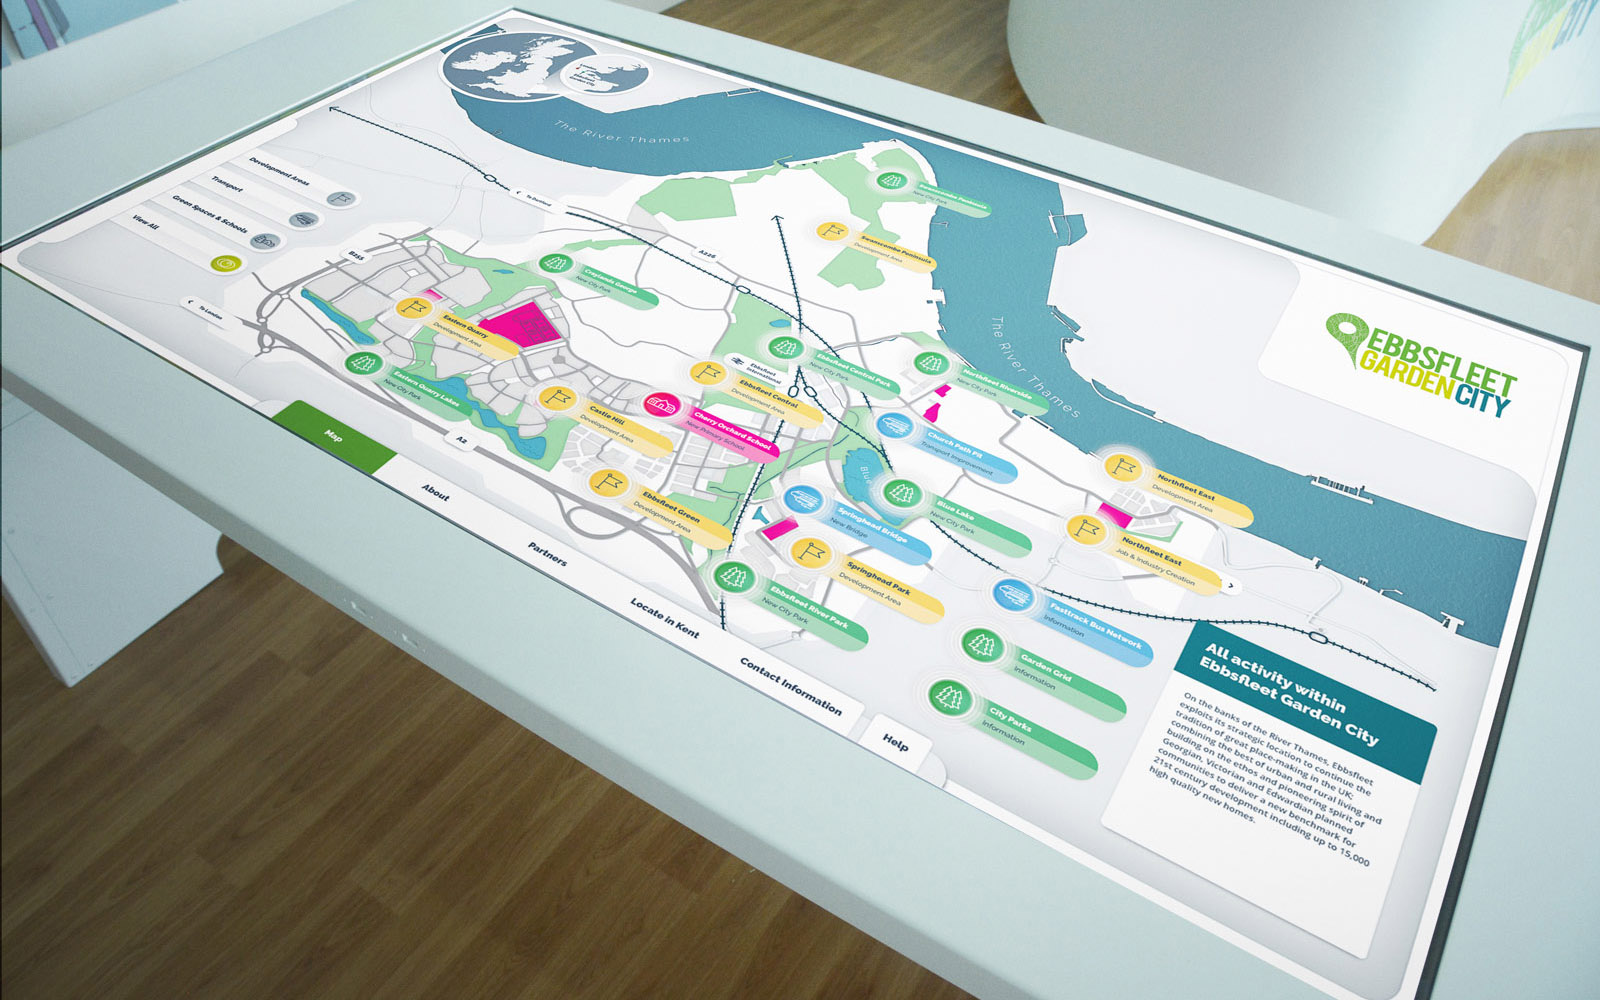 Ebbsfleet interactive map displayed on large touchscreen white monitor